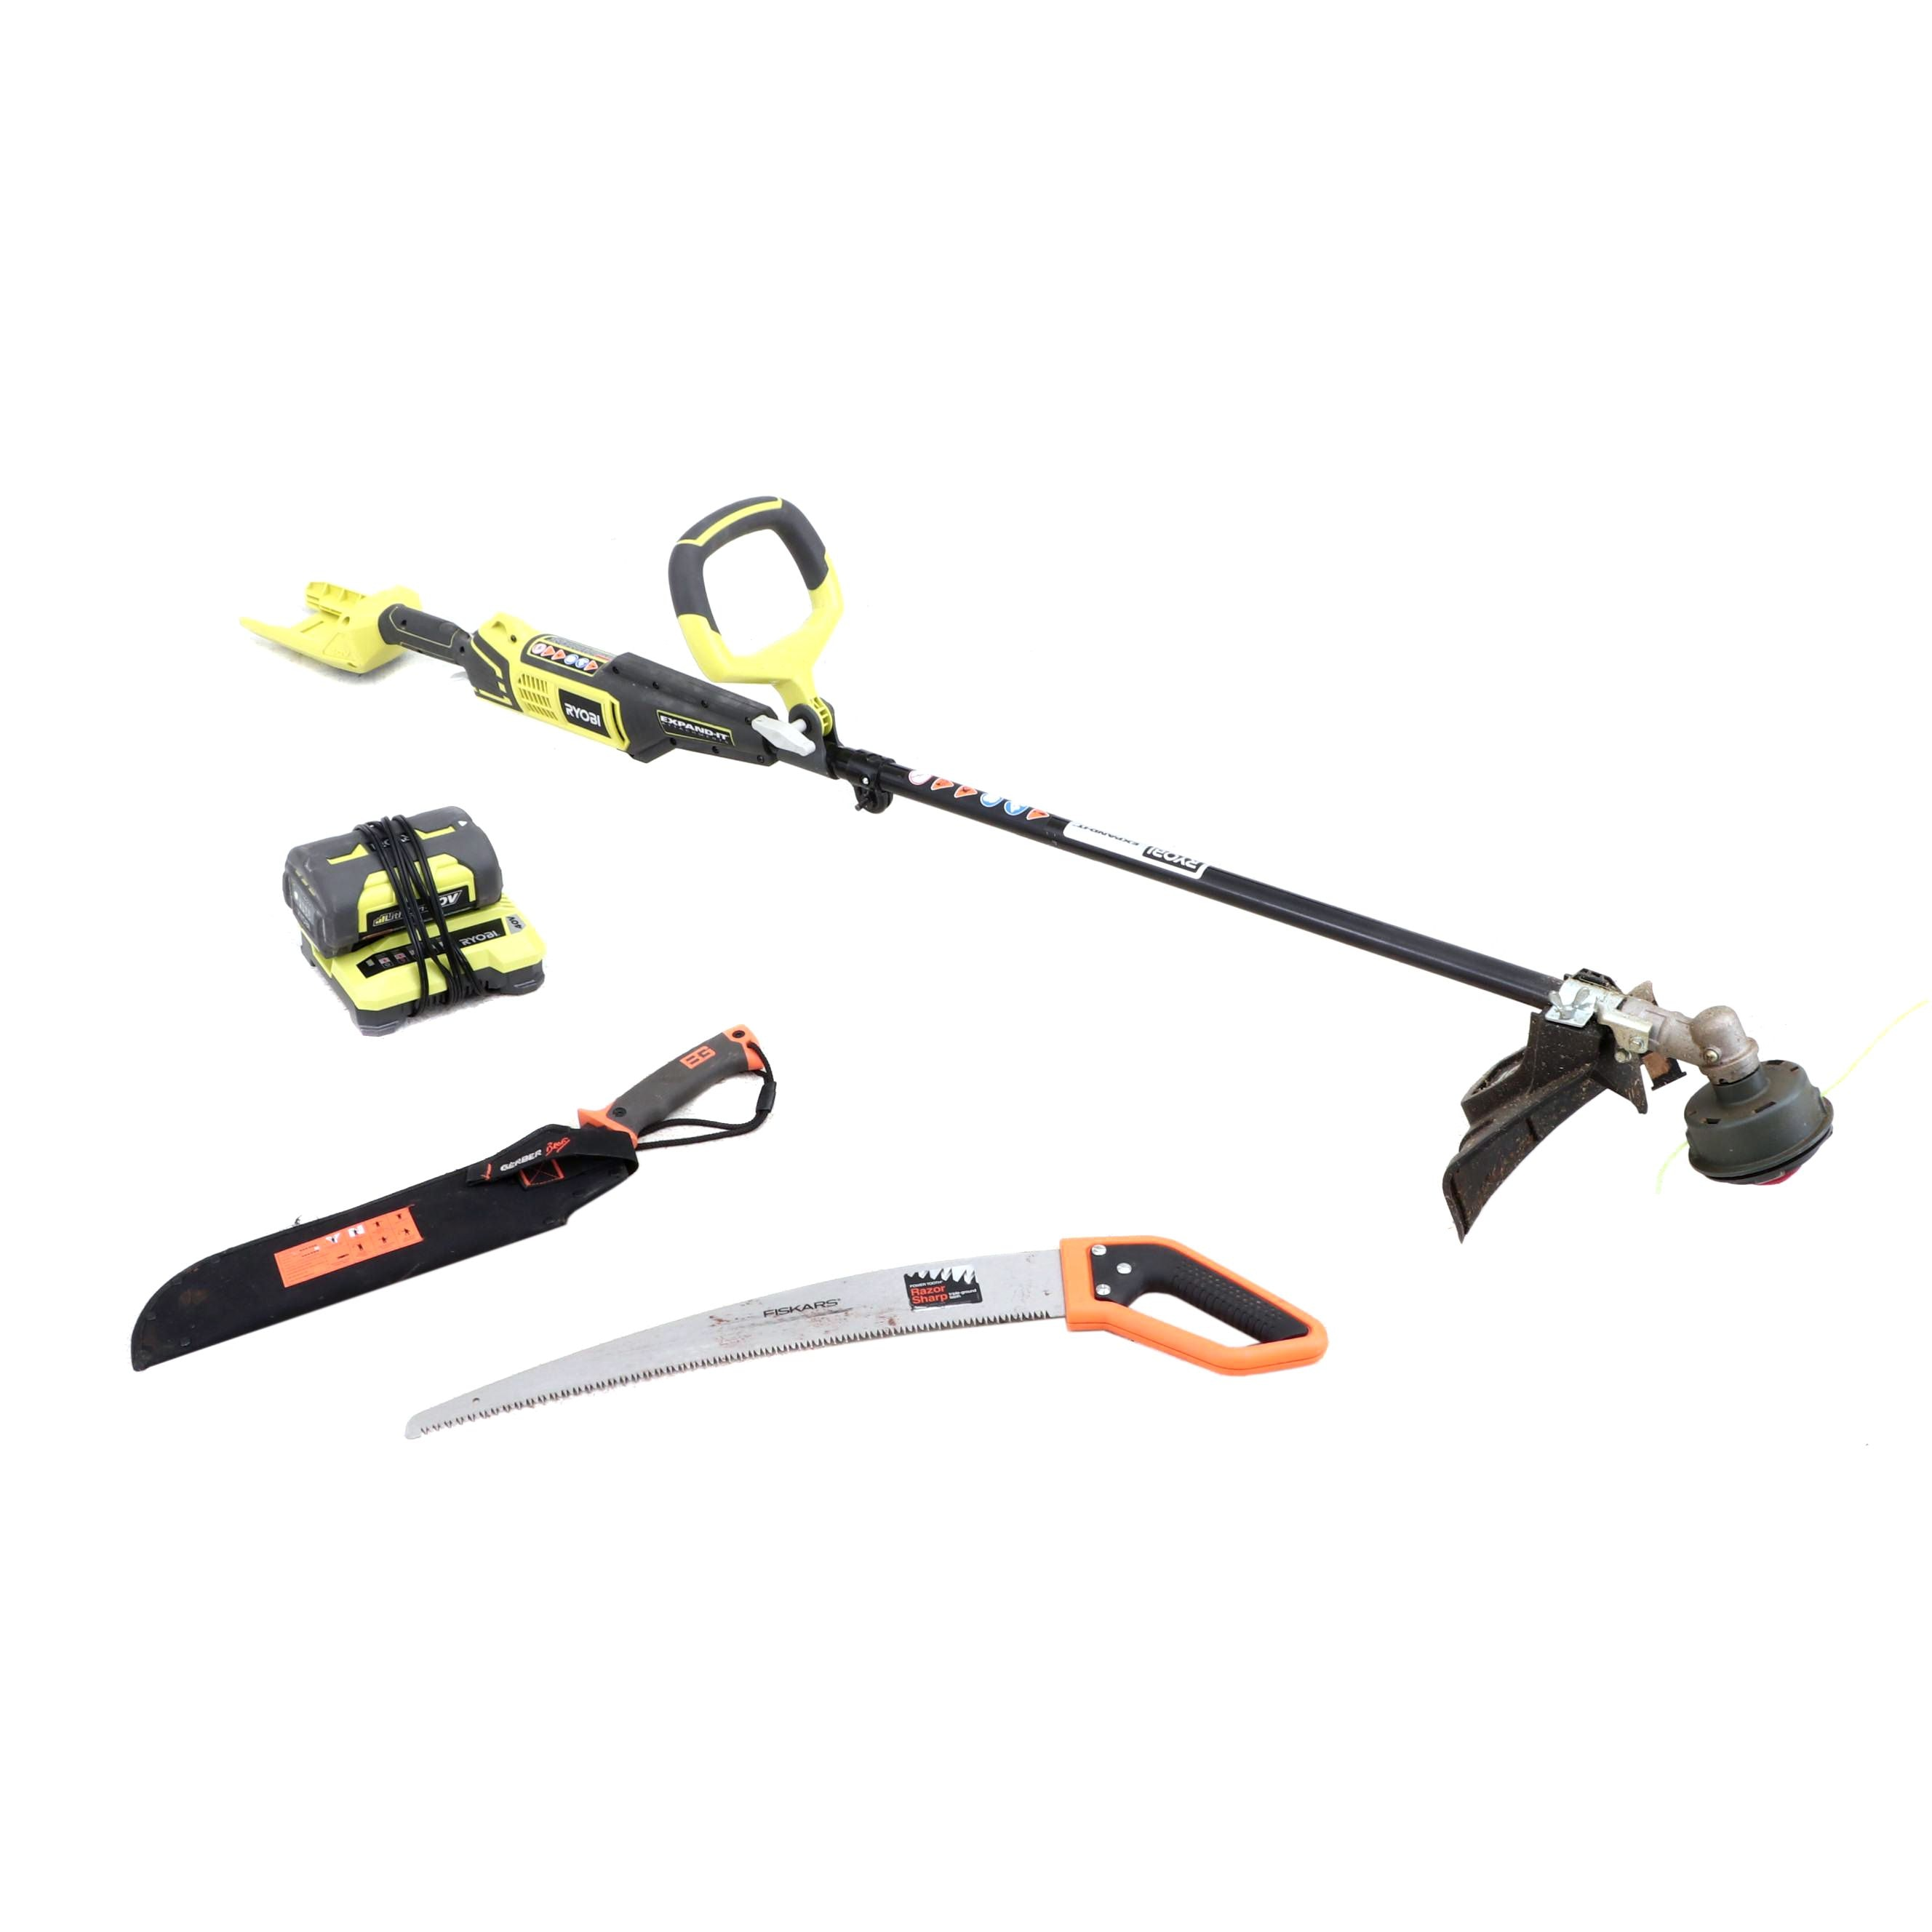 Ryobi Weed Trimmer, Trim Saw and Machete